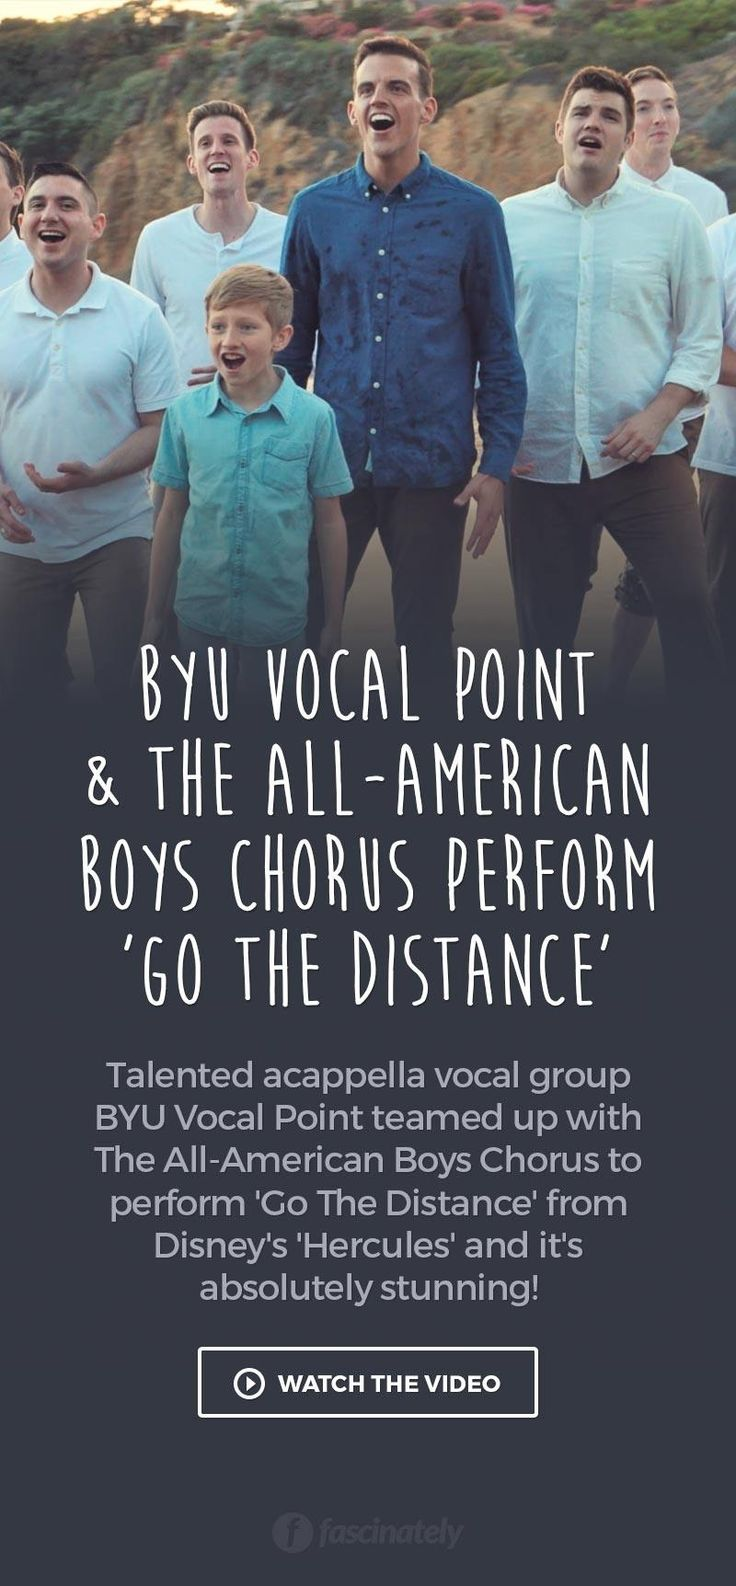 BYU Vocal Point & The All-American Boys Chorus Perform 'Go The Distance'